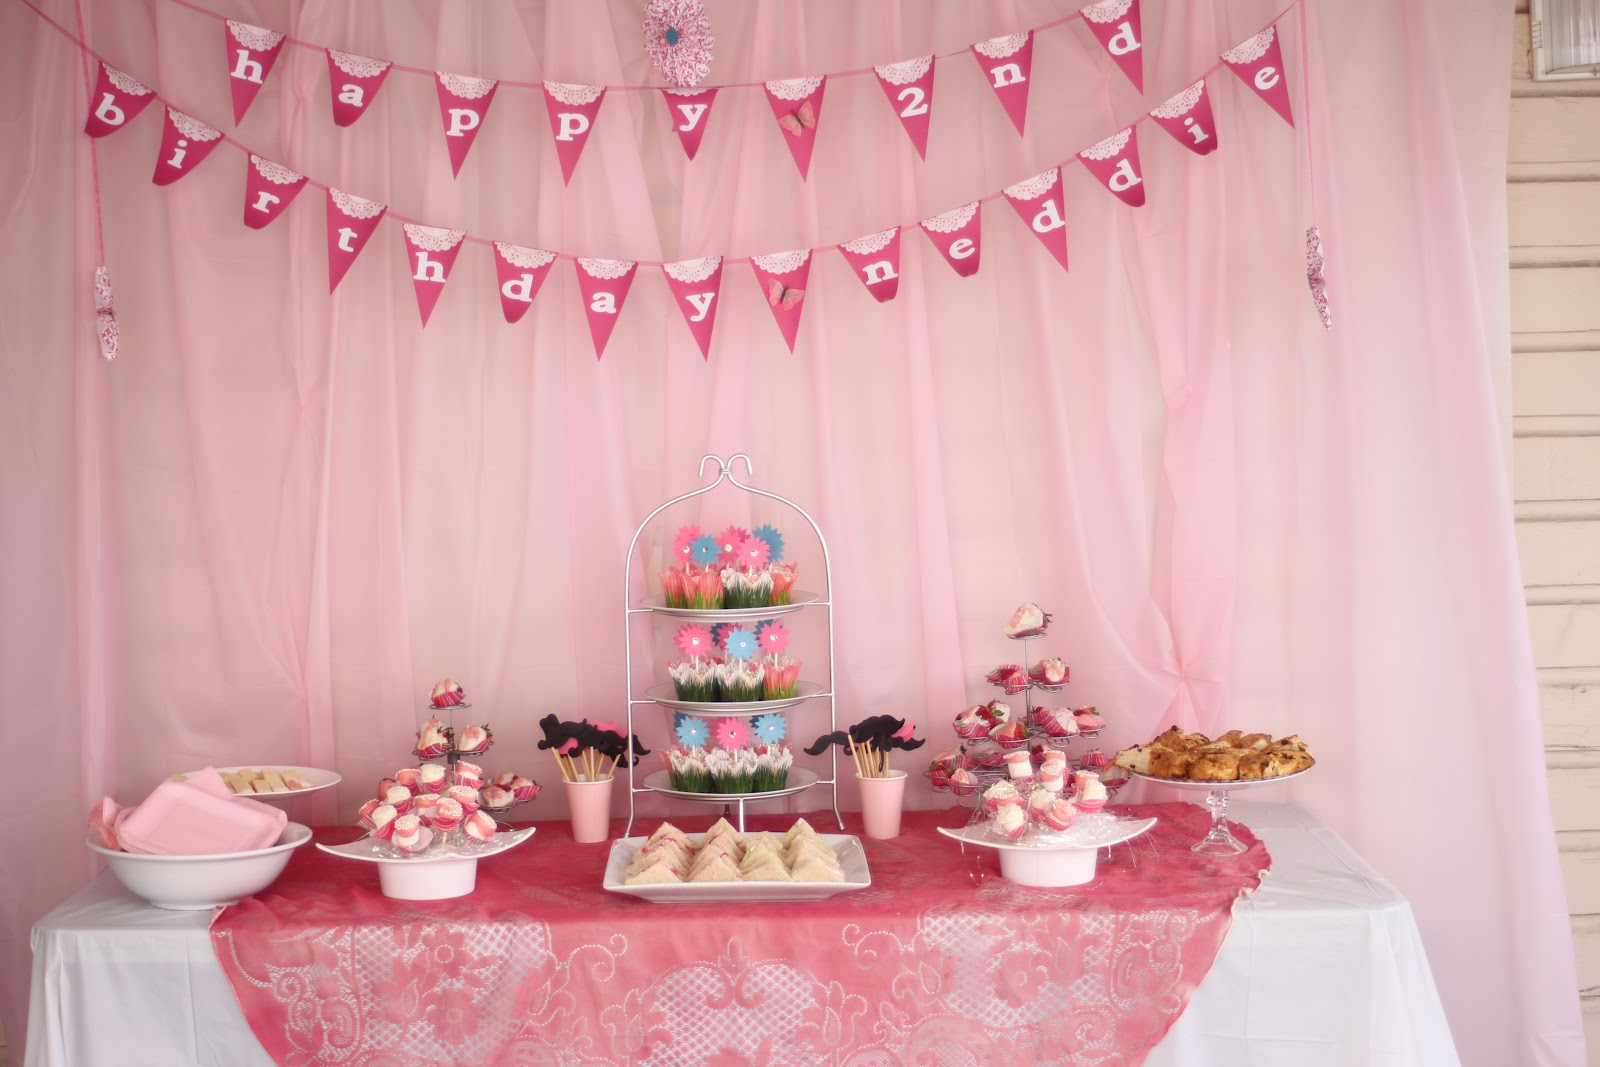 2 year old birthday party themes ; april+29+2012+018